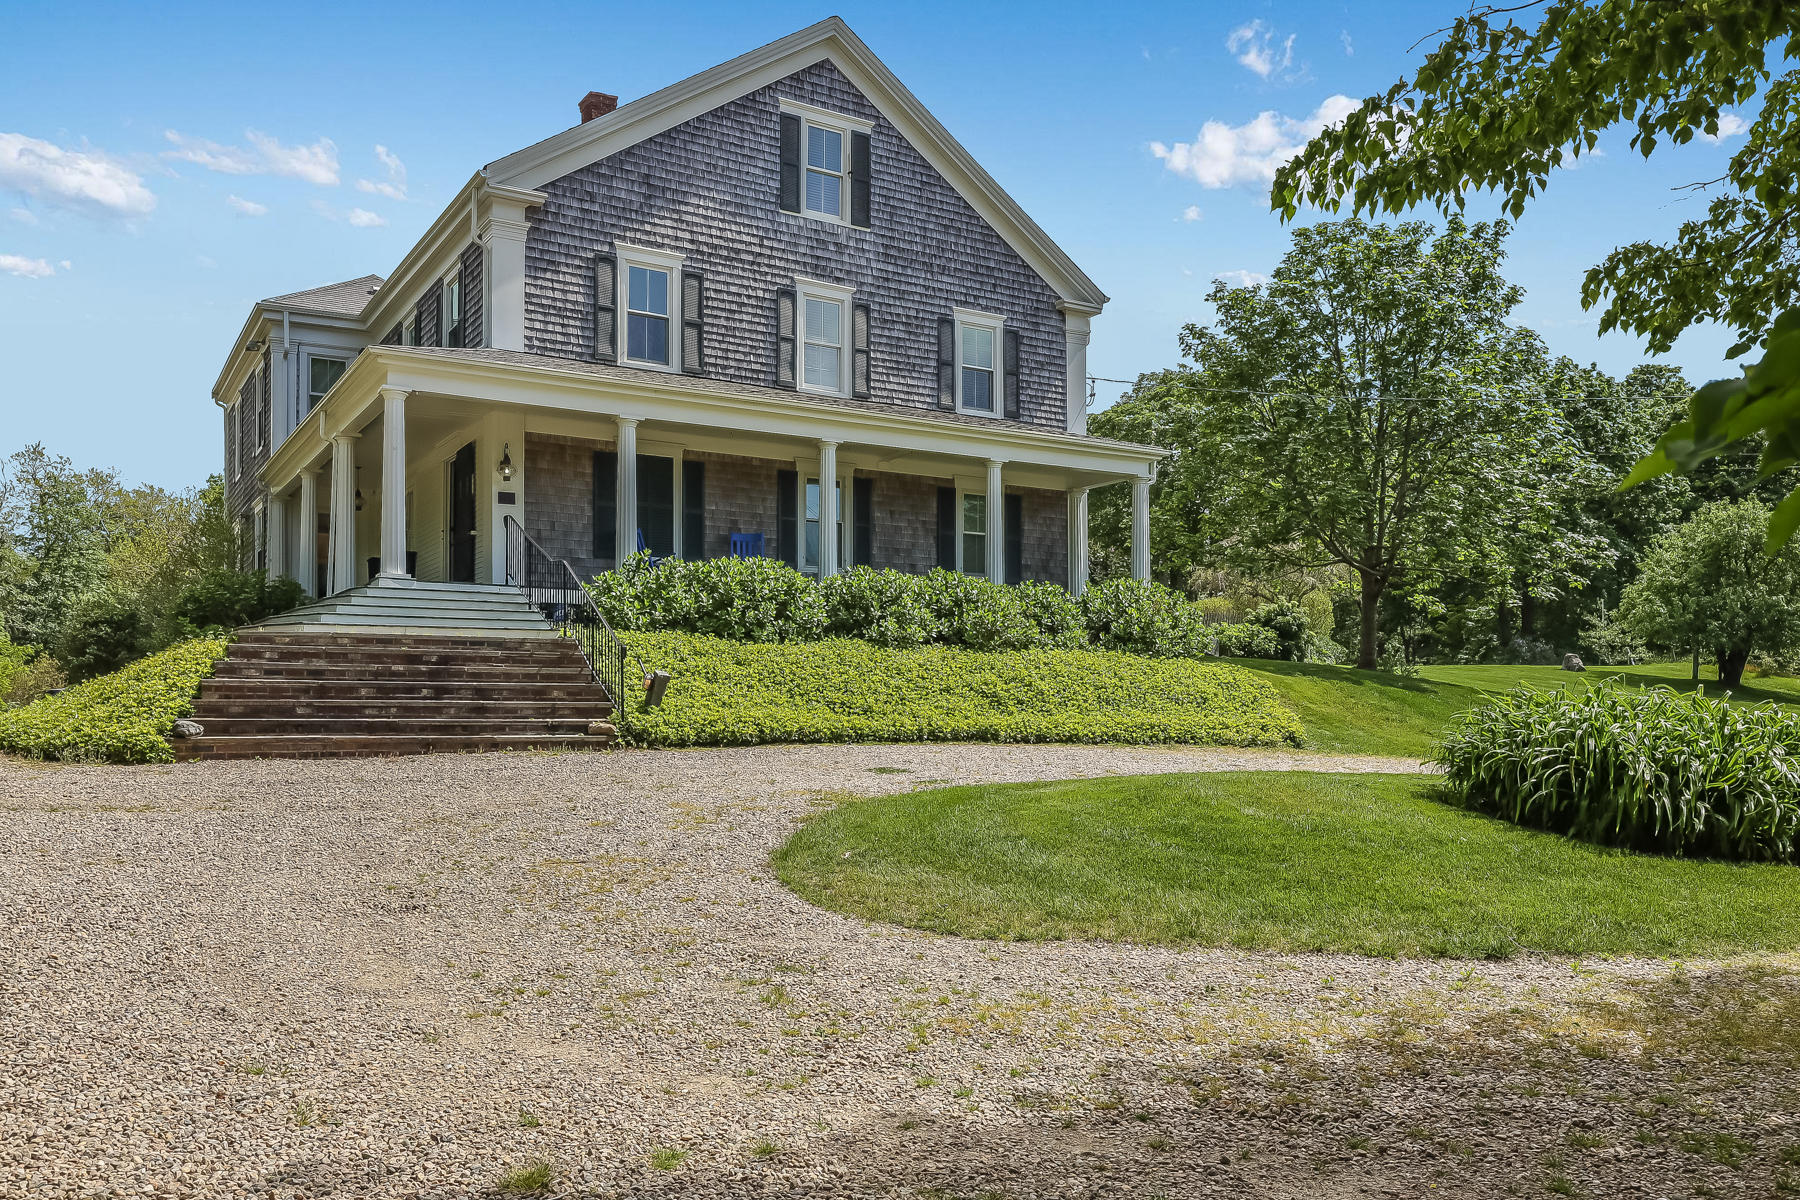 35 Route 6A Yarmouth Port MA, 02675 details